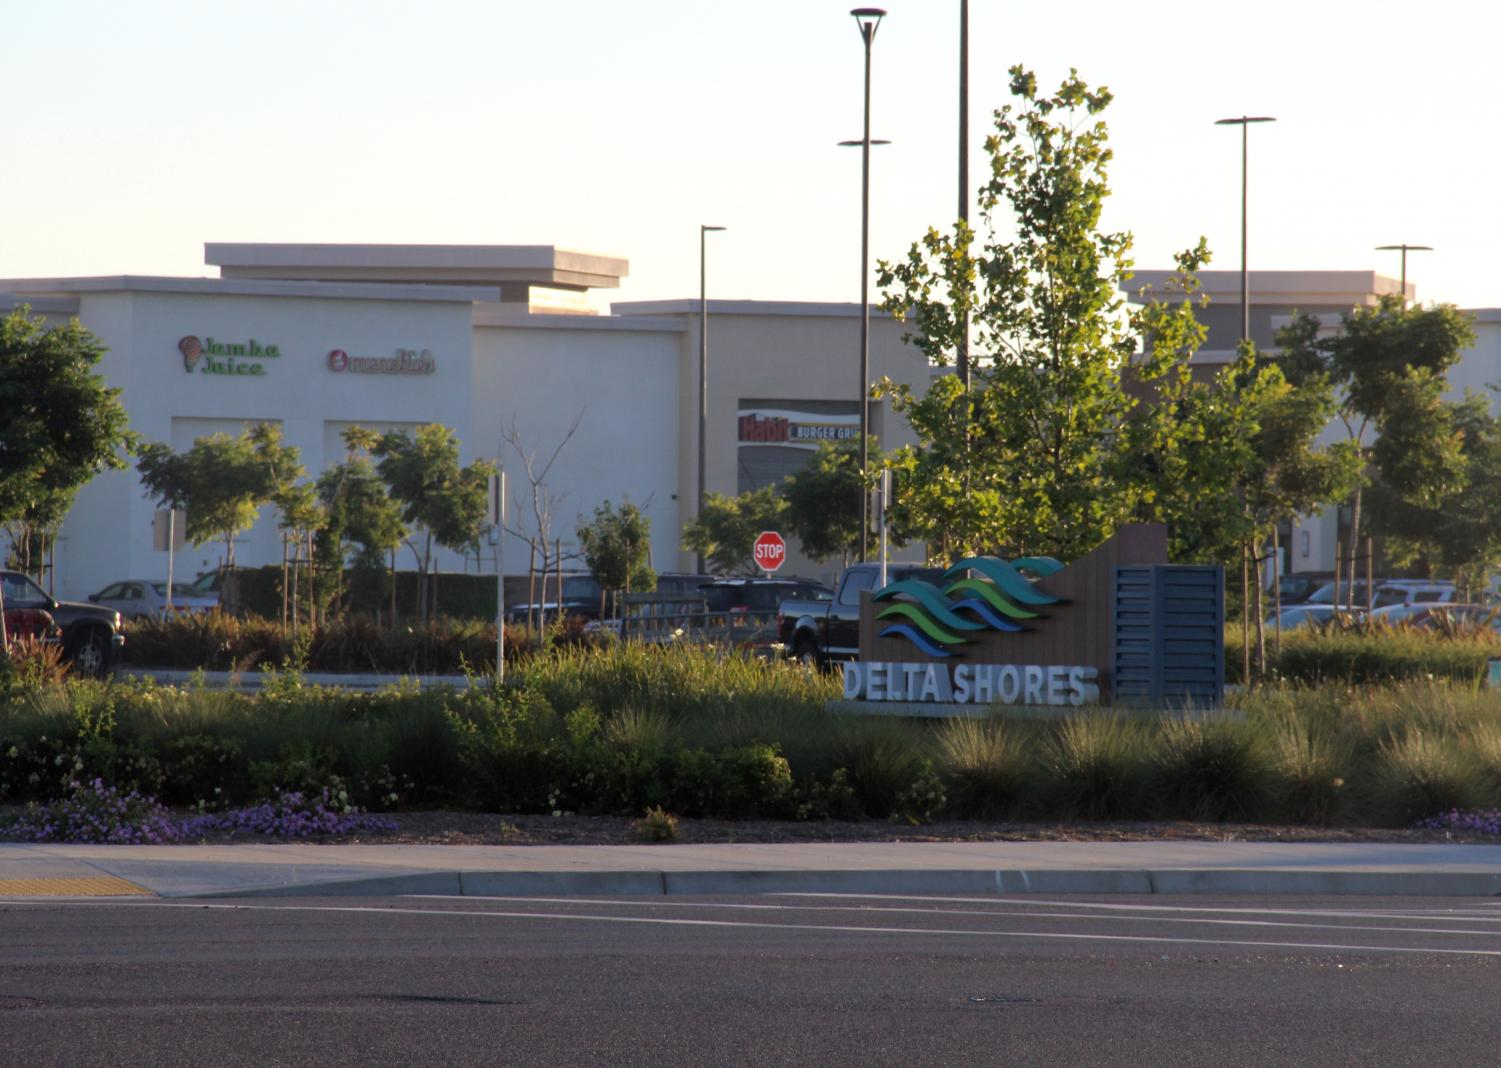 Delta Shores features 69 new businesses,  including large retailers, restaurants, and a movie theater.